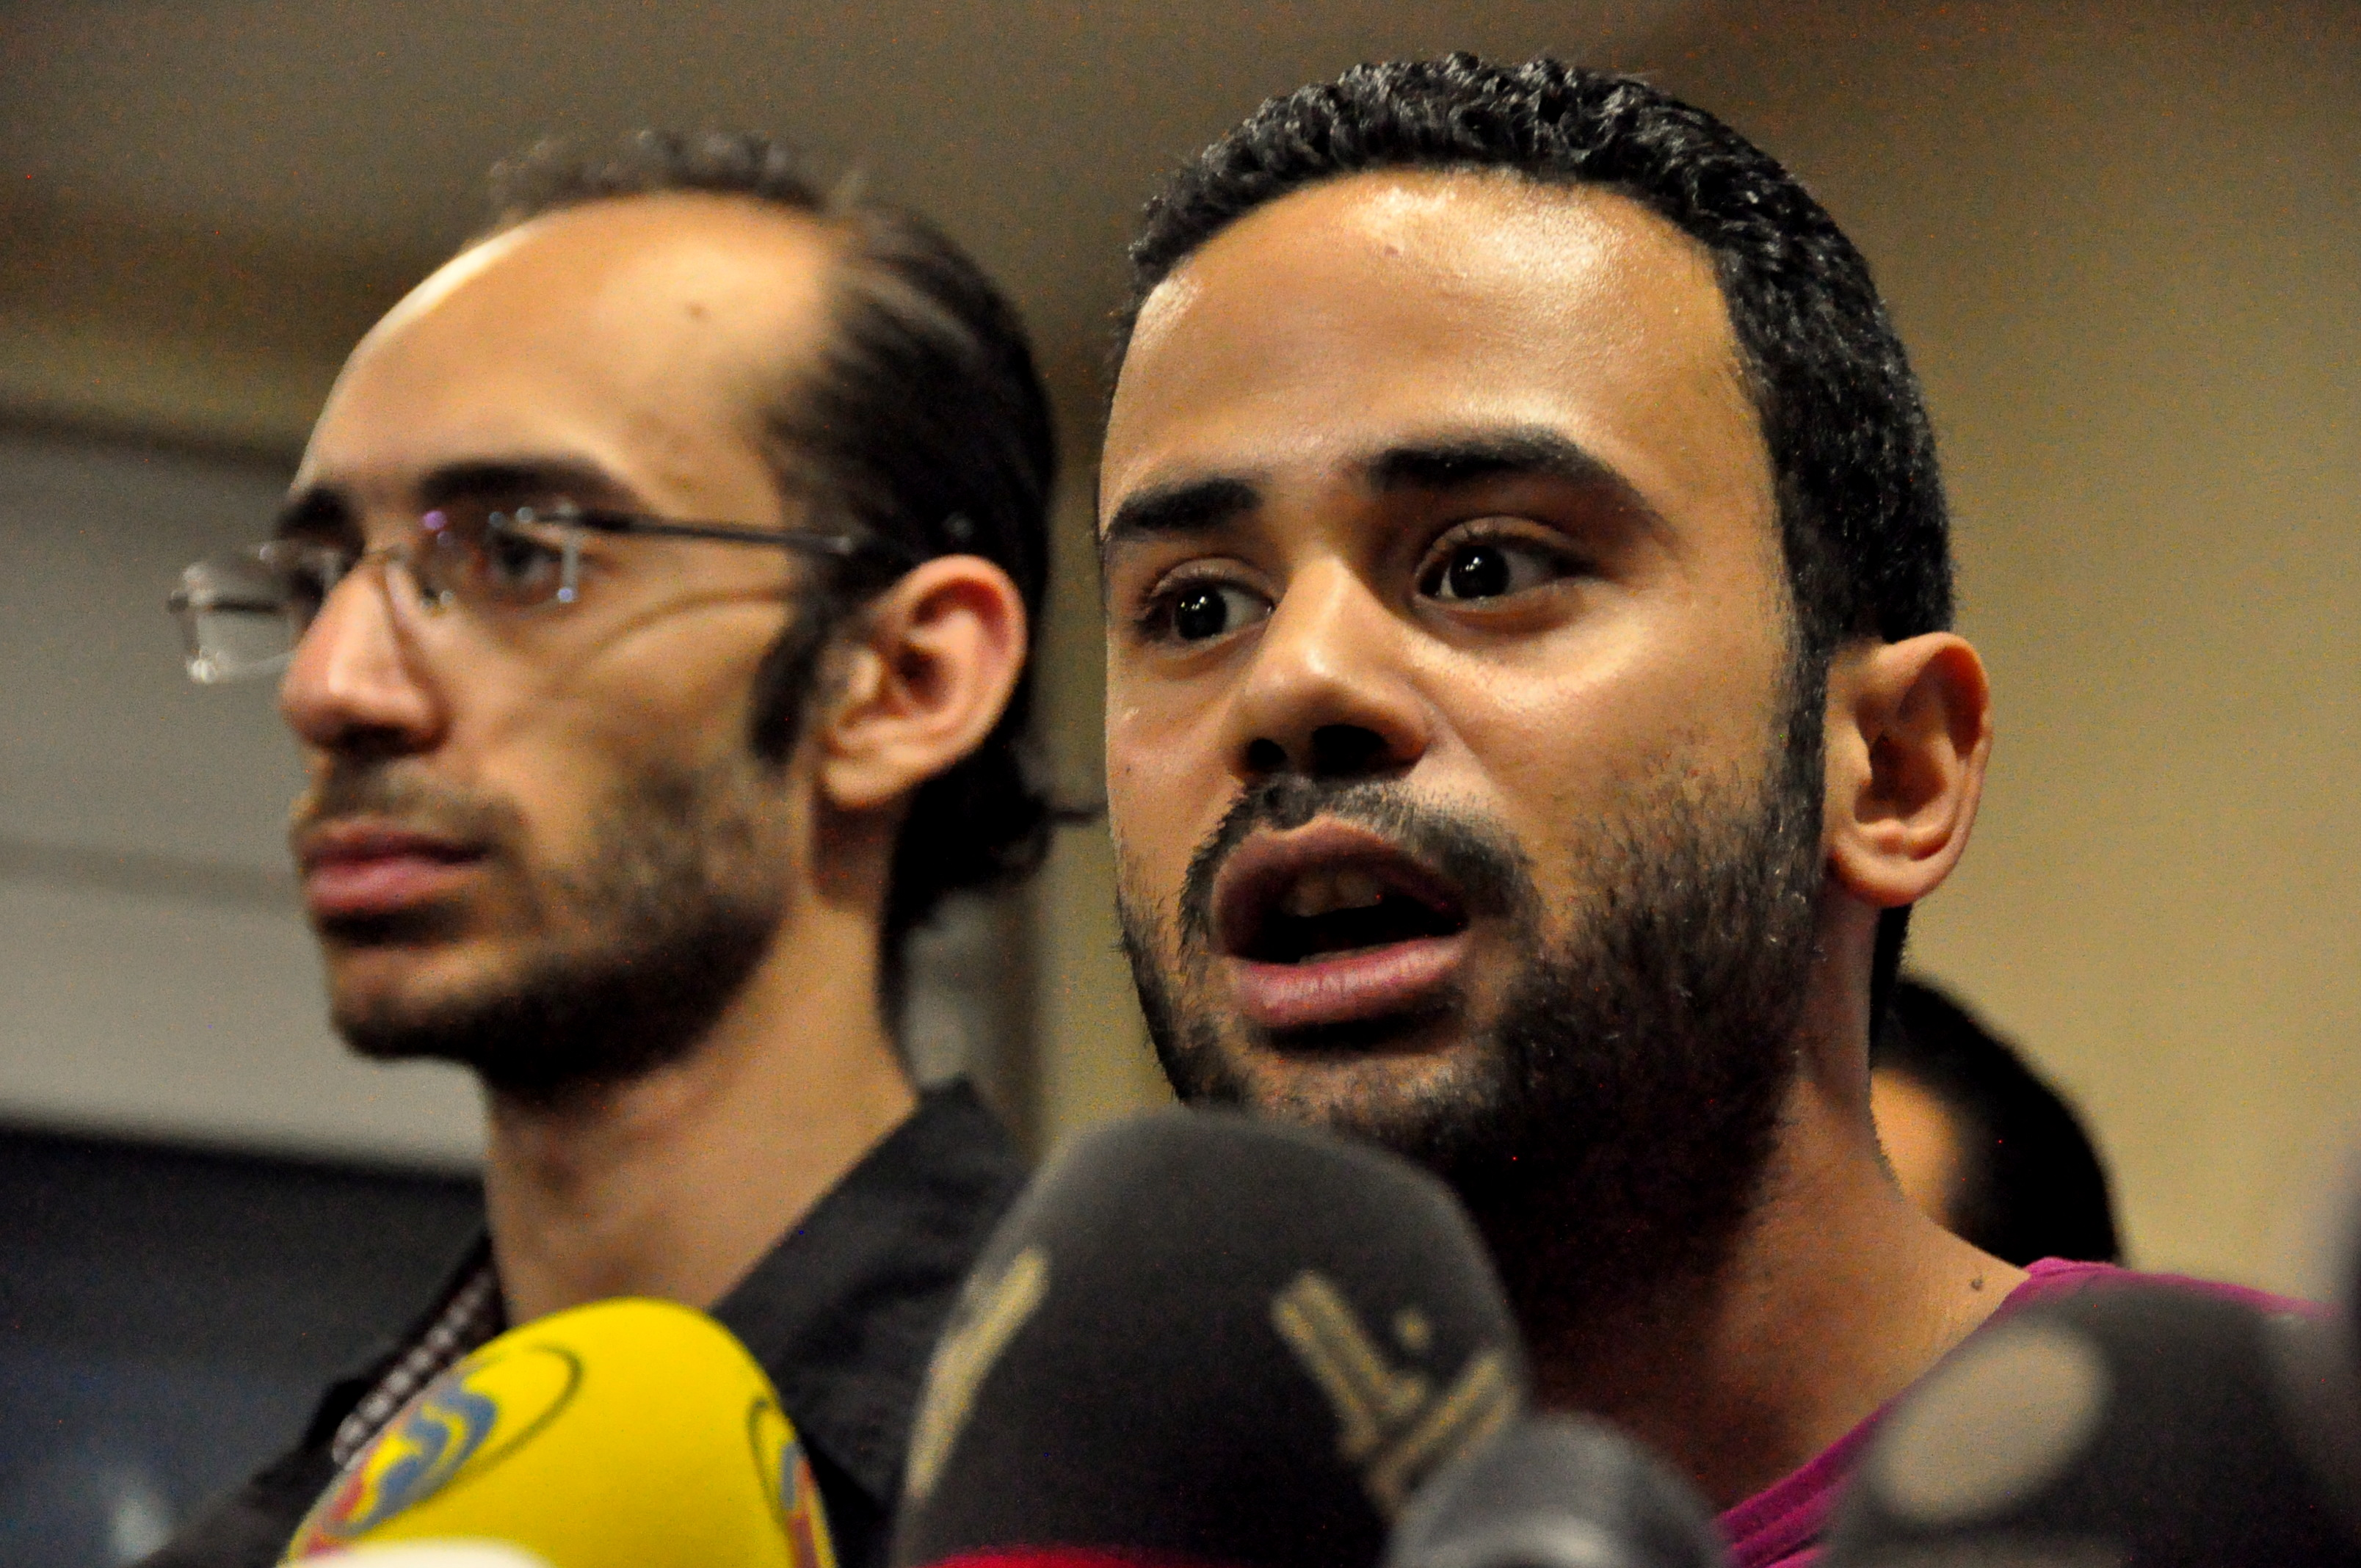 Mahmoud Badr (right) was the victim of a robbery and hijacking on Monday.